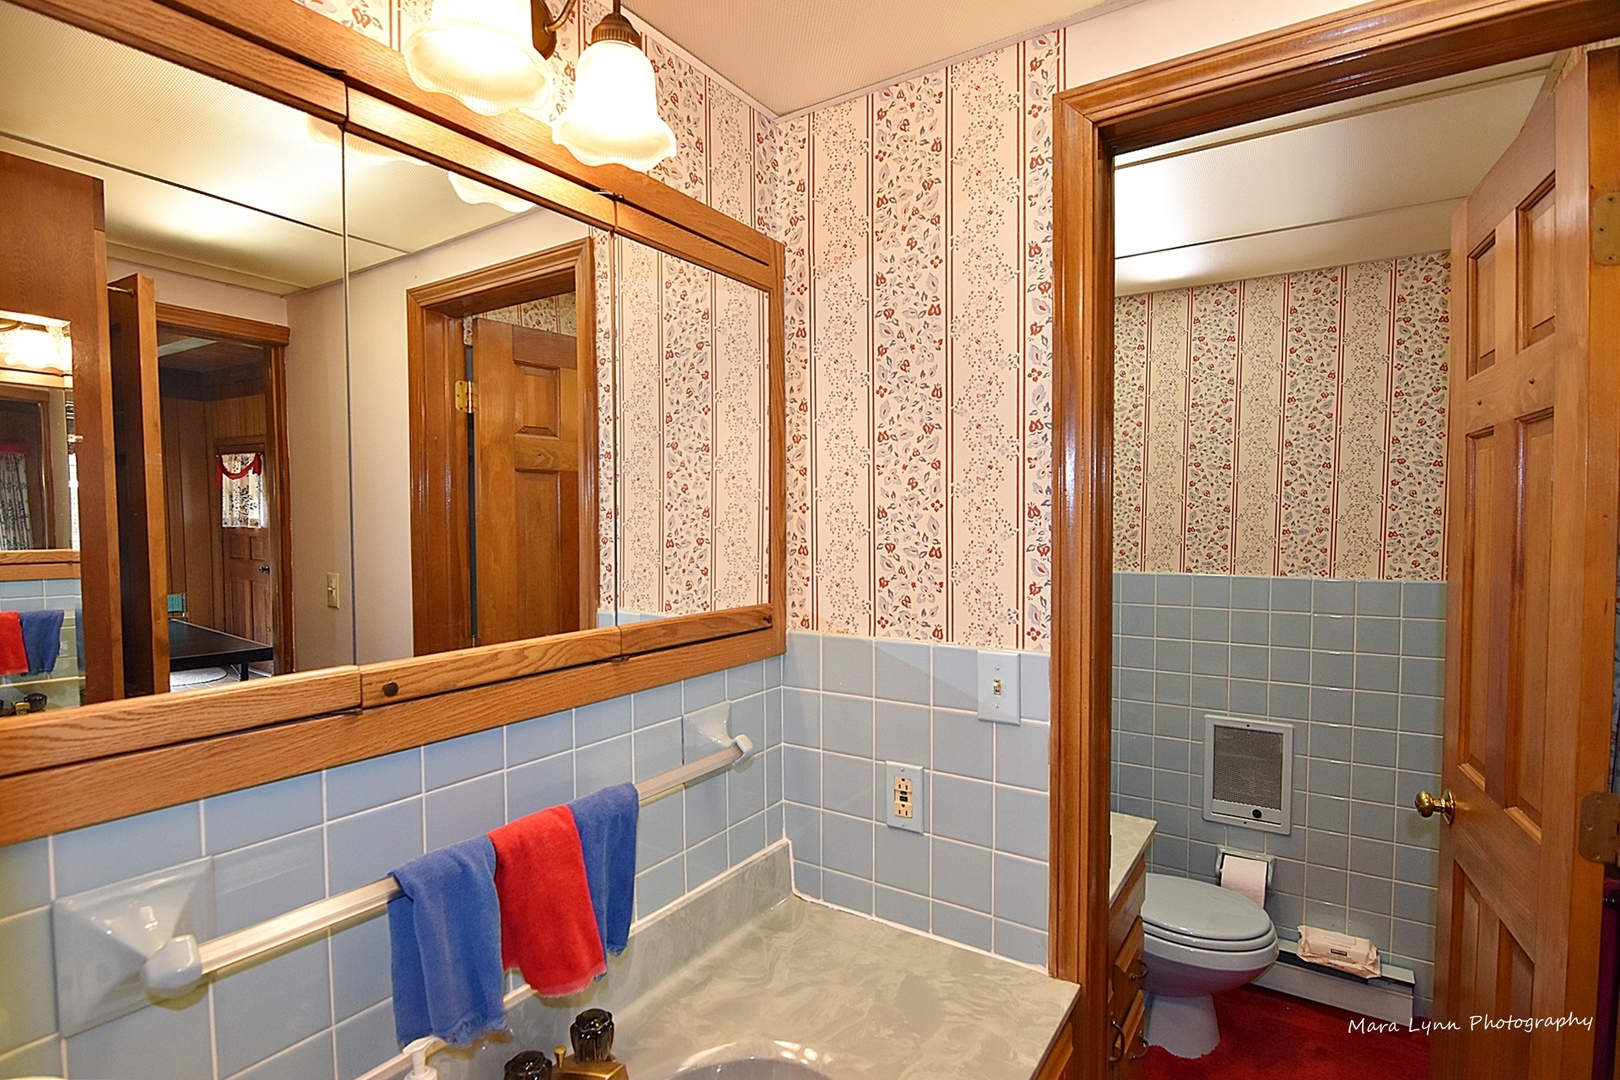 405 South 4th, ST. CHARLES, Illinois, 60174